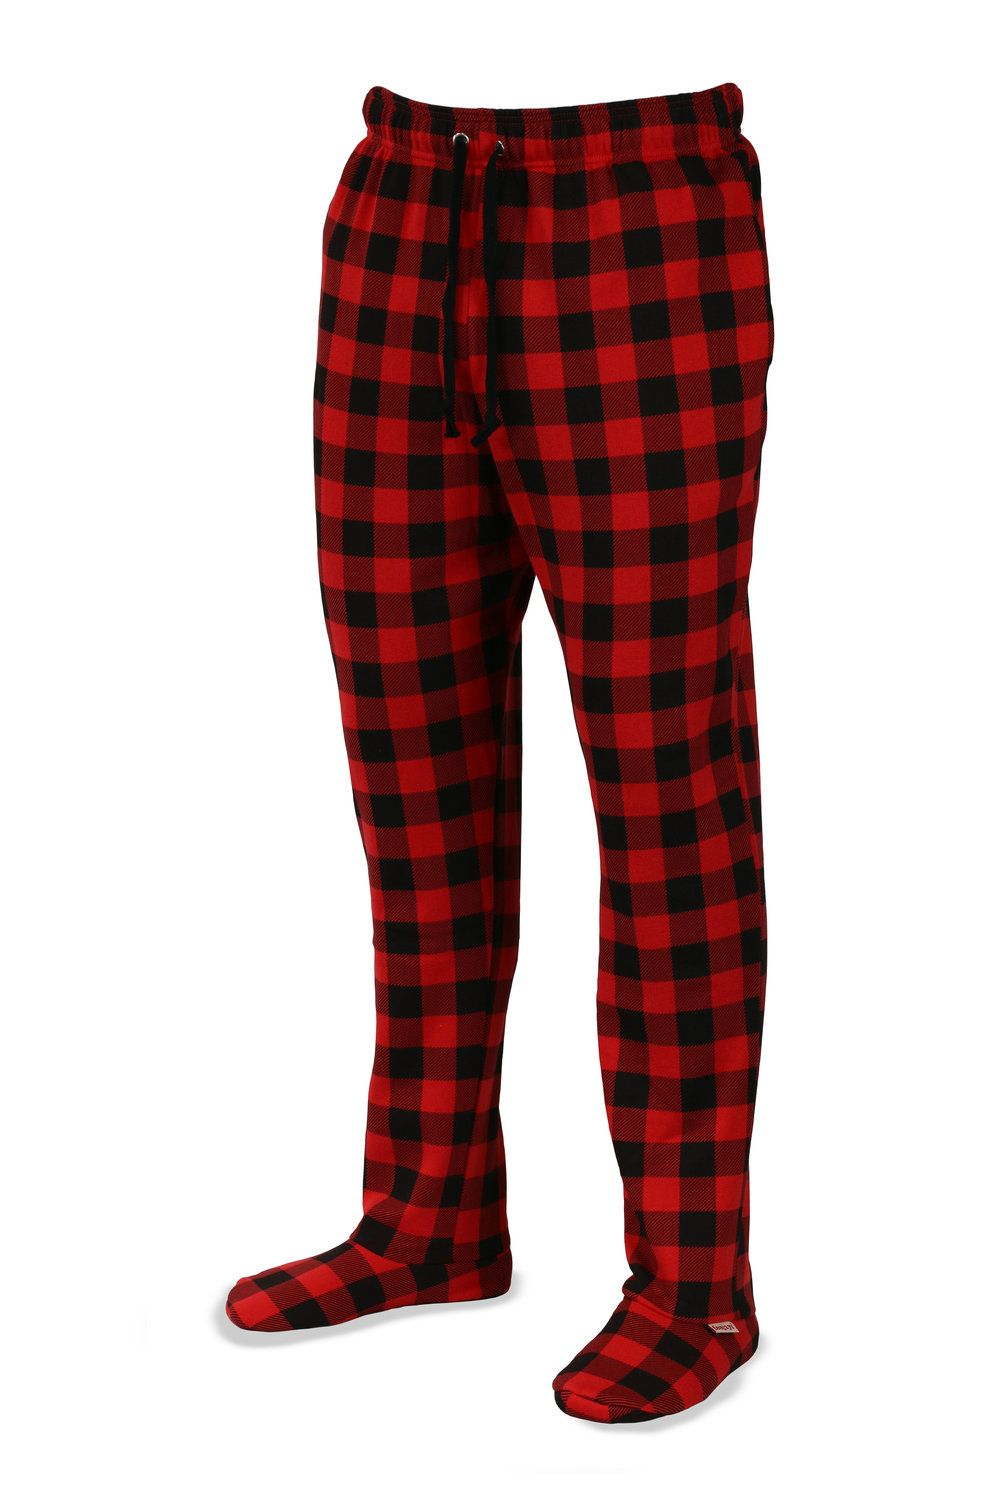 Sweatpants With Feet Lumberjack Feejays Materials 80 Cotton 20 Polyester Details Draw String Waist Band Cozy Hand Pockets Ultra Plush Sherpa Lined